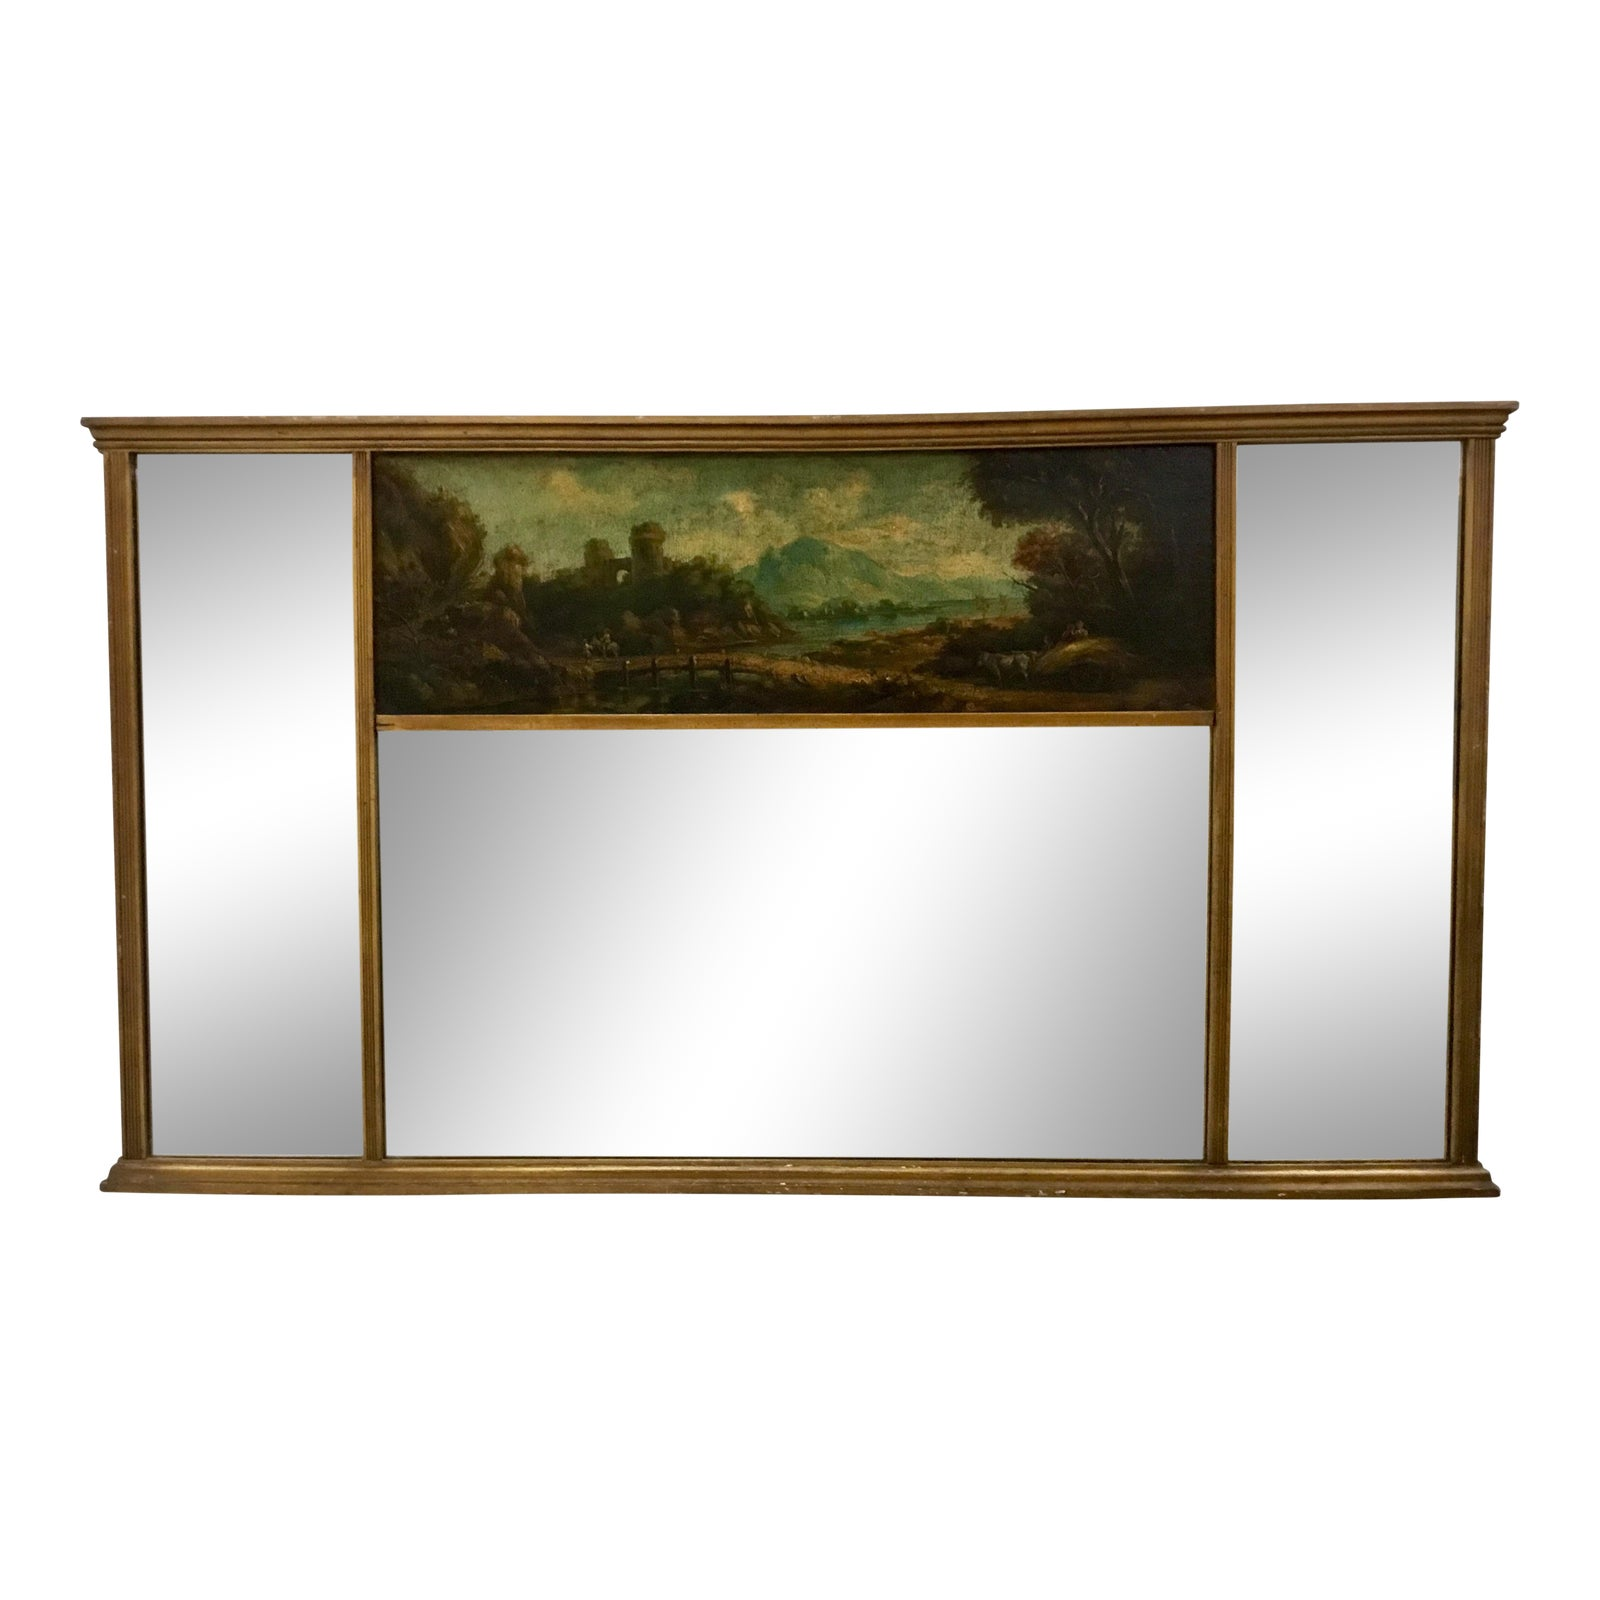 Century Continental With Mirror Painting Mantel Landscape Panel Over Oil On 19th 4qcLj5AR3